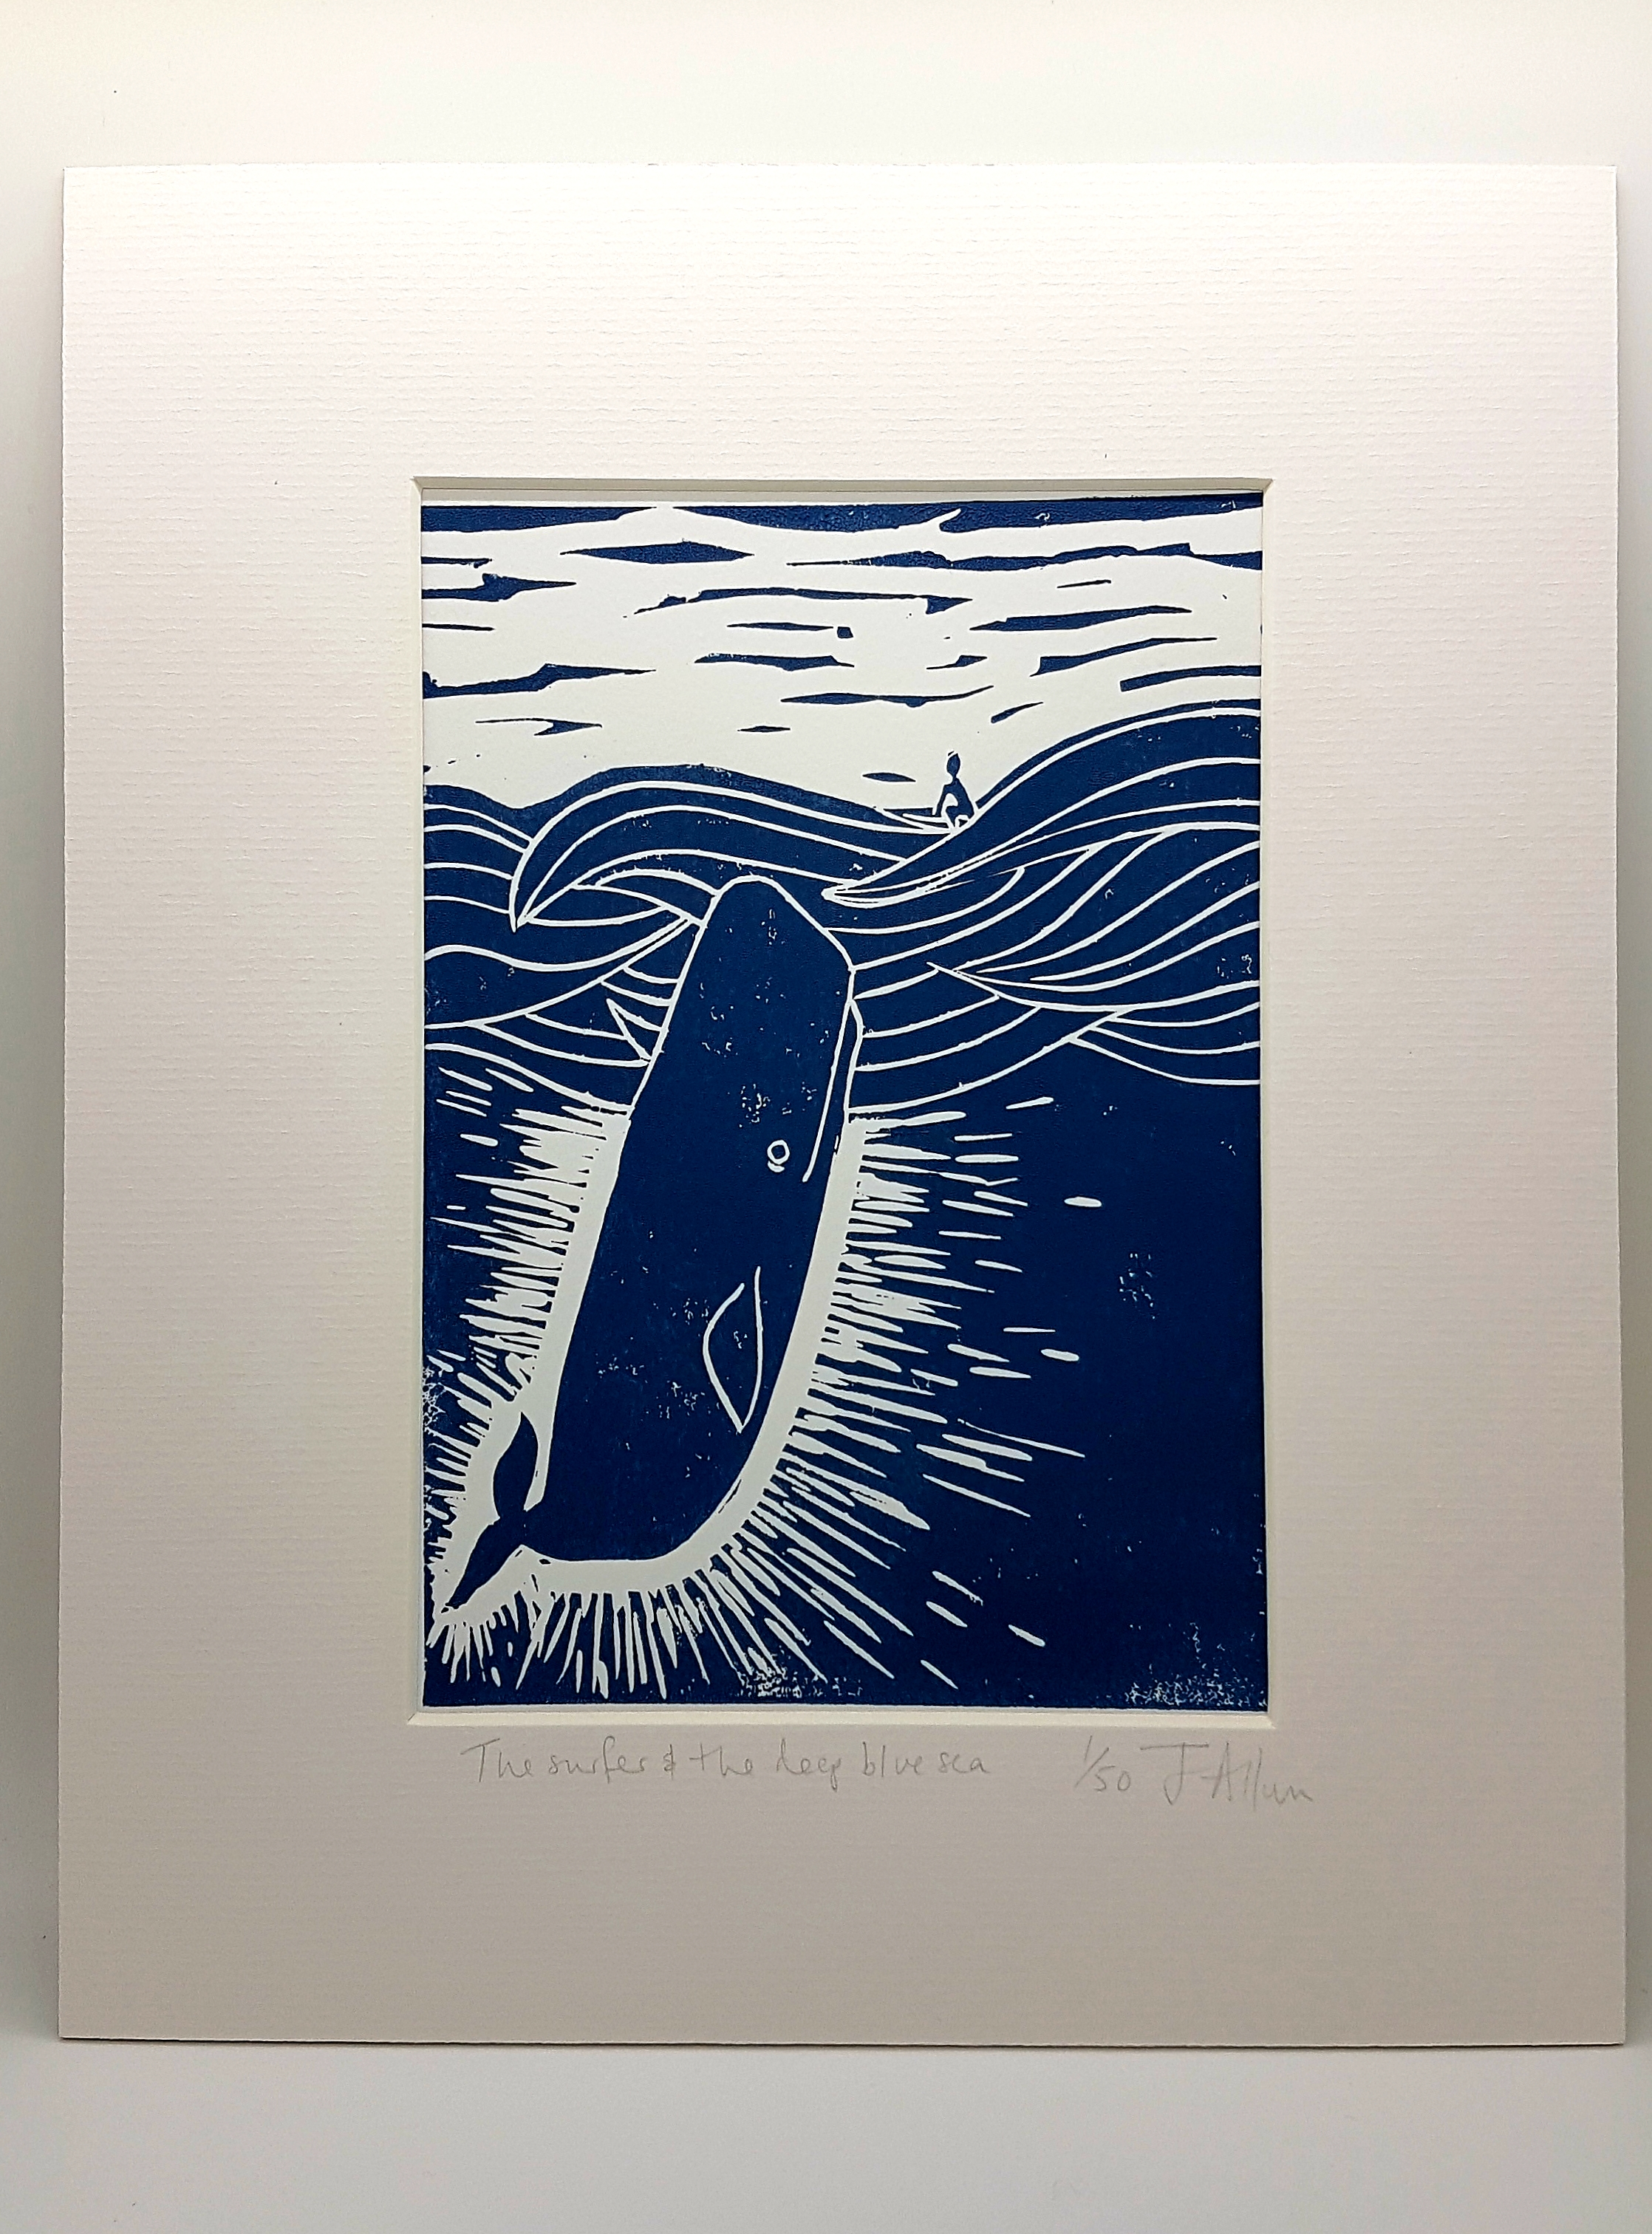 Original lino print. Surfer and the deep blue sea